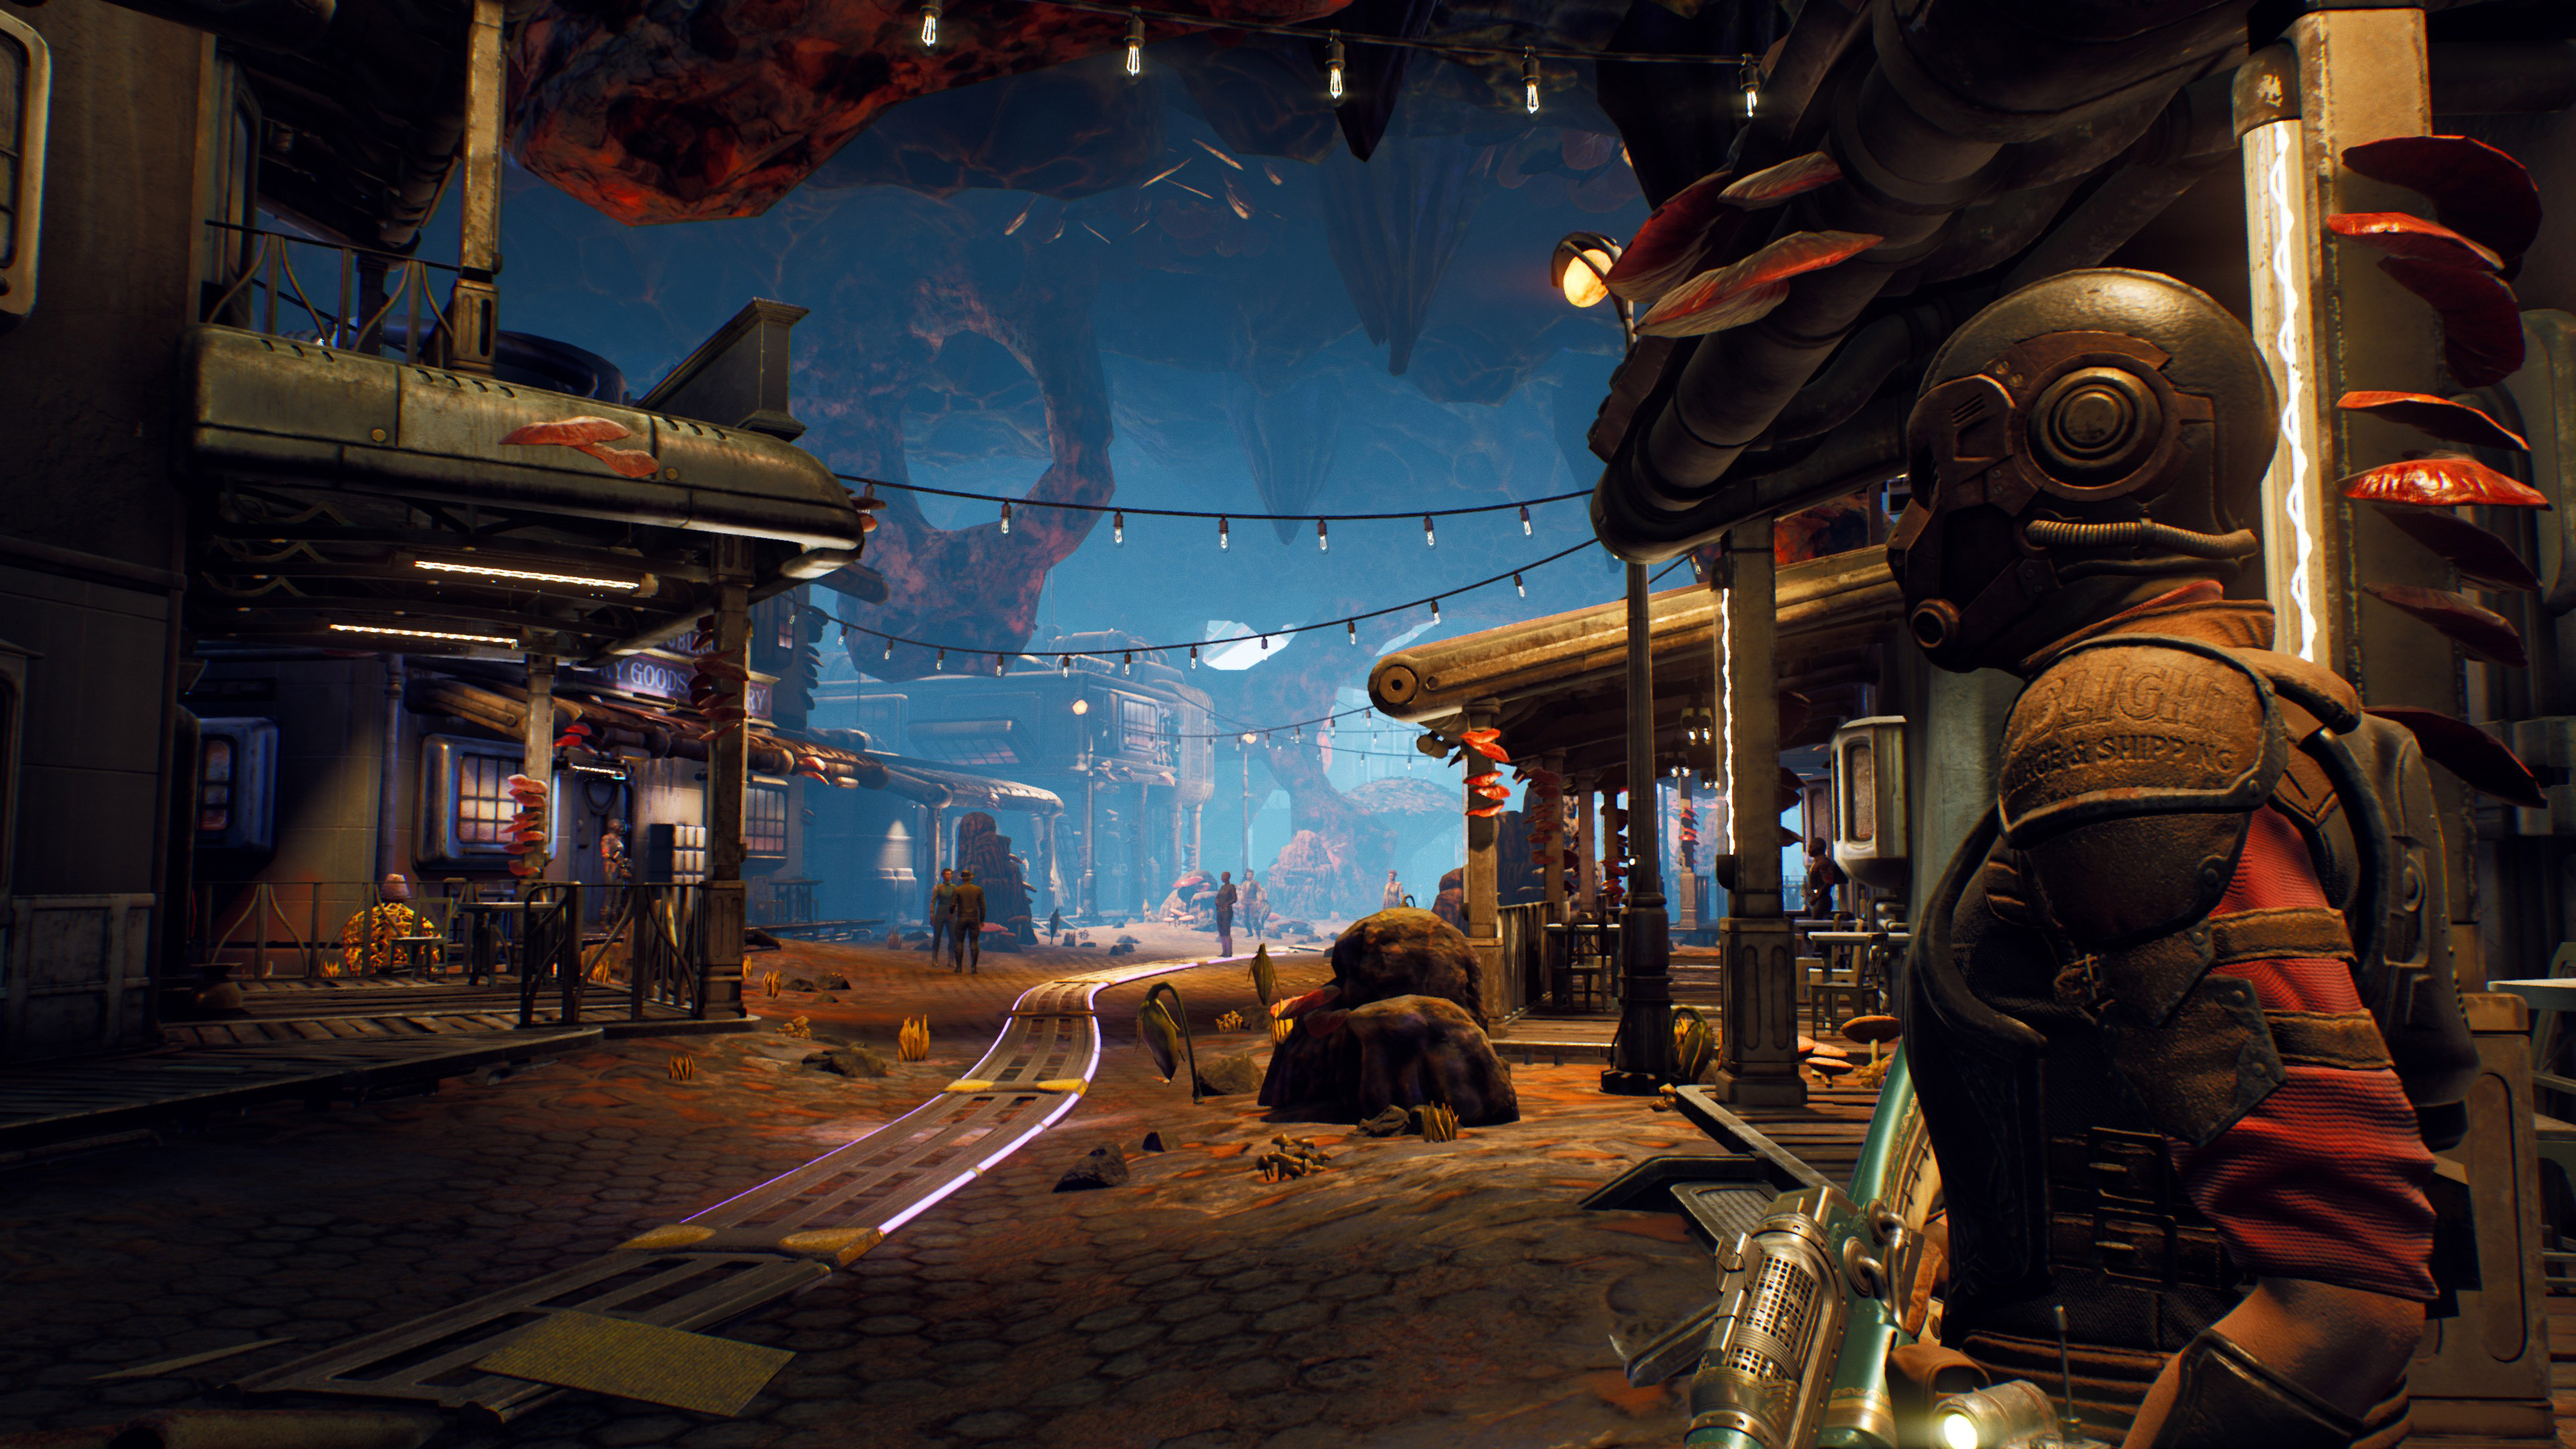 The Outer Worlds Wallpapers In Ultra Hd 4k Gameranx